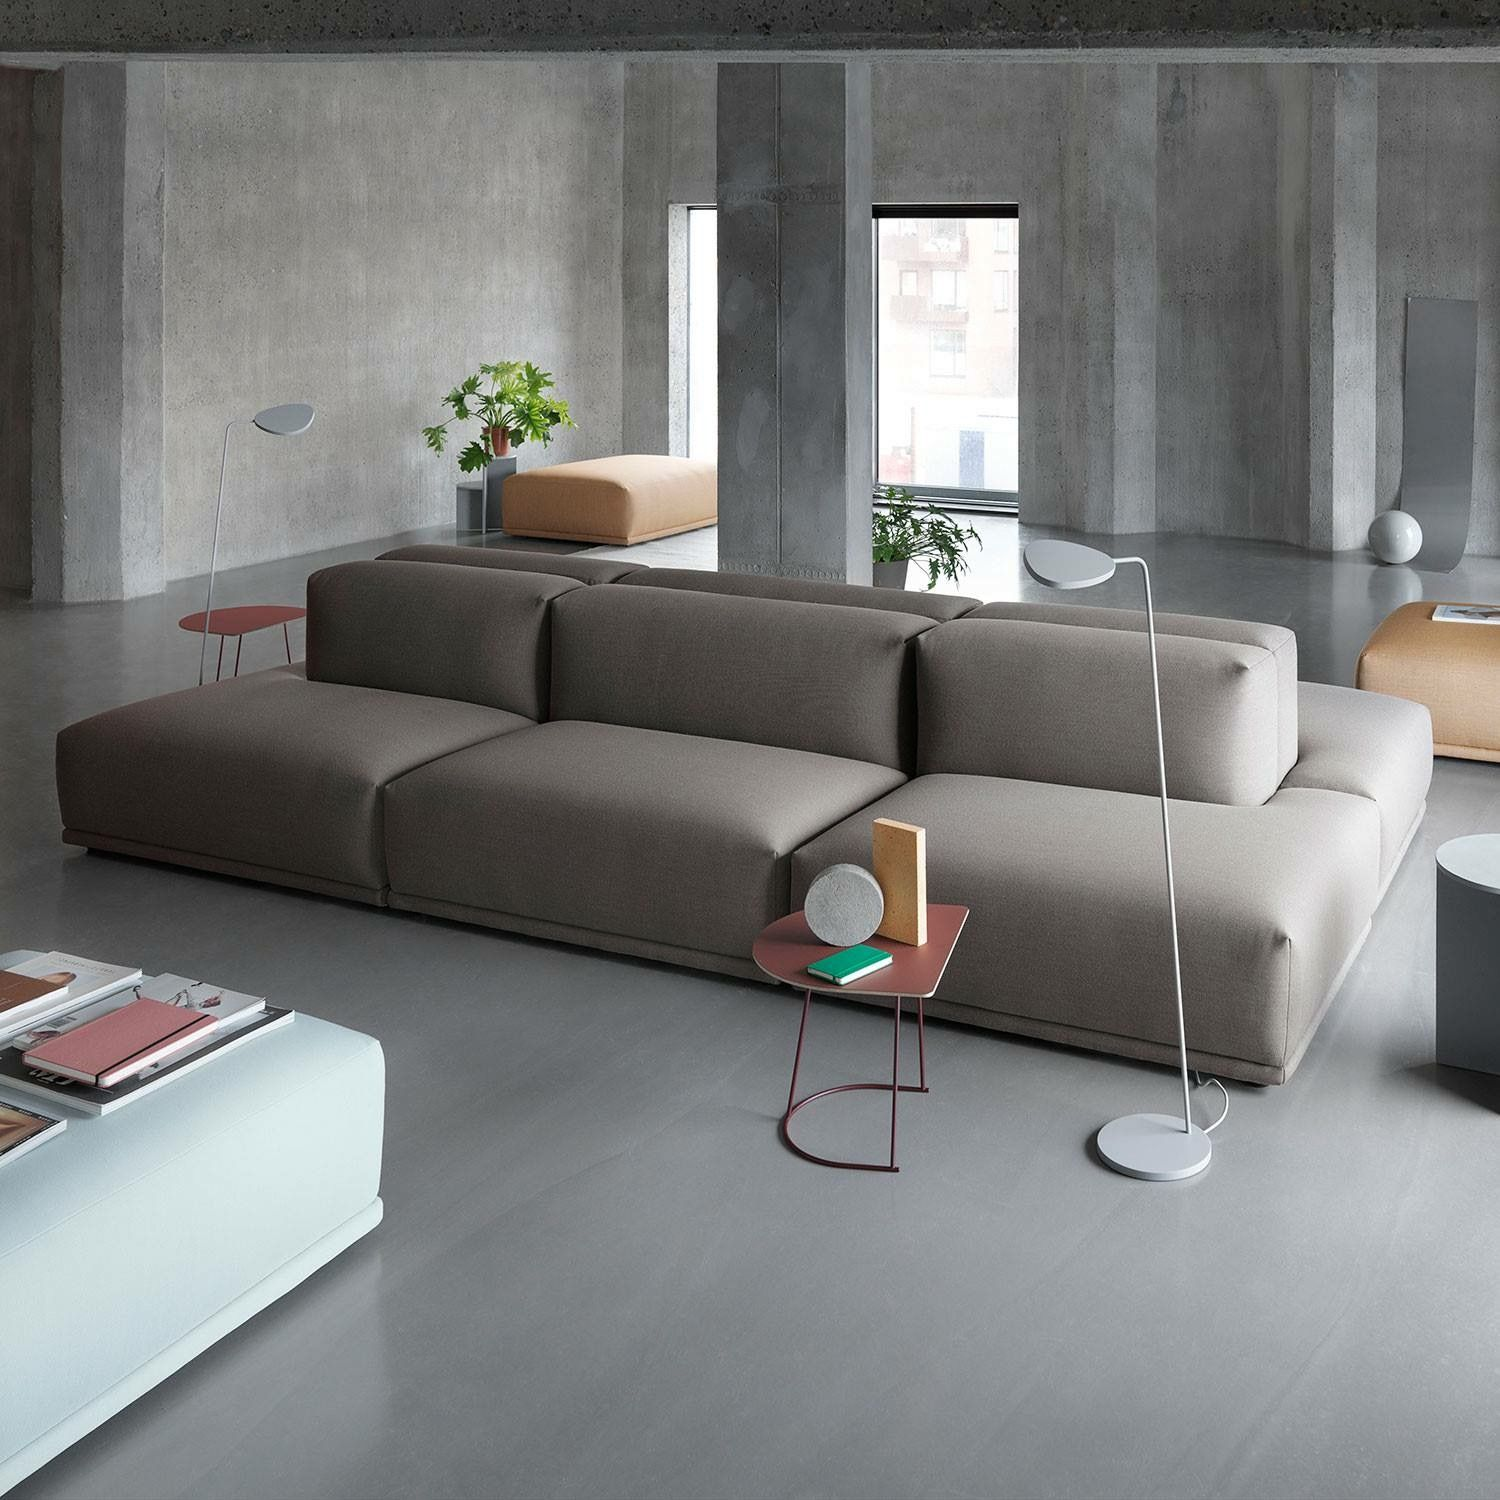 The Muuto Connect Modular System Allows You To Customize The Design For Your Individual Space Adding A Simpl Thuisdecoratie Meubelstoffen Boerderij Woonkamers